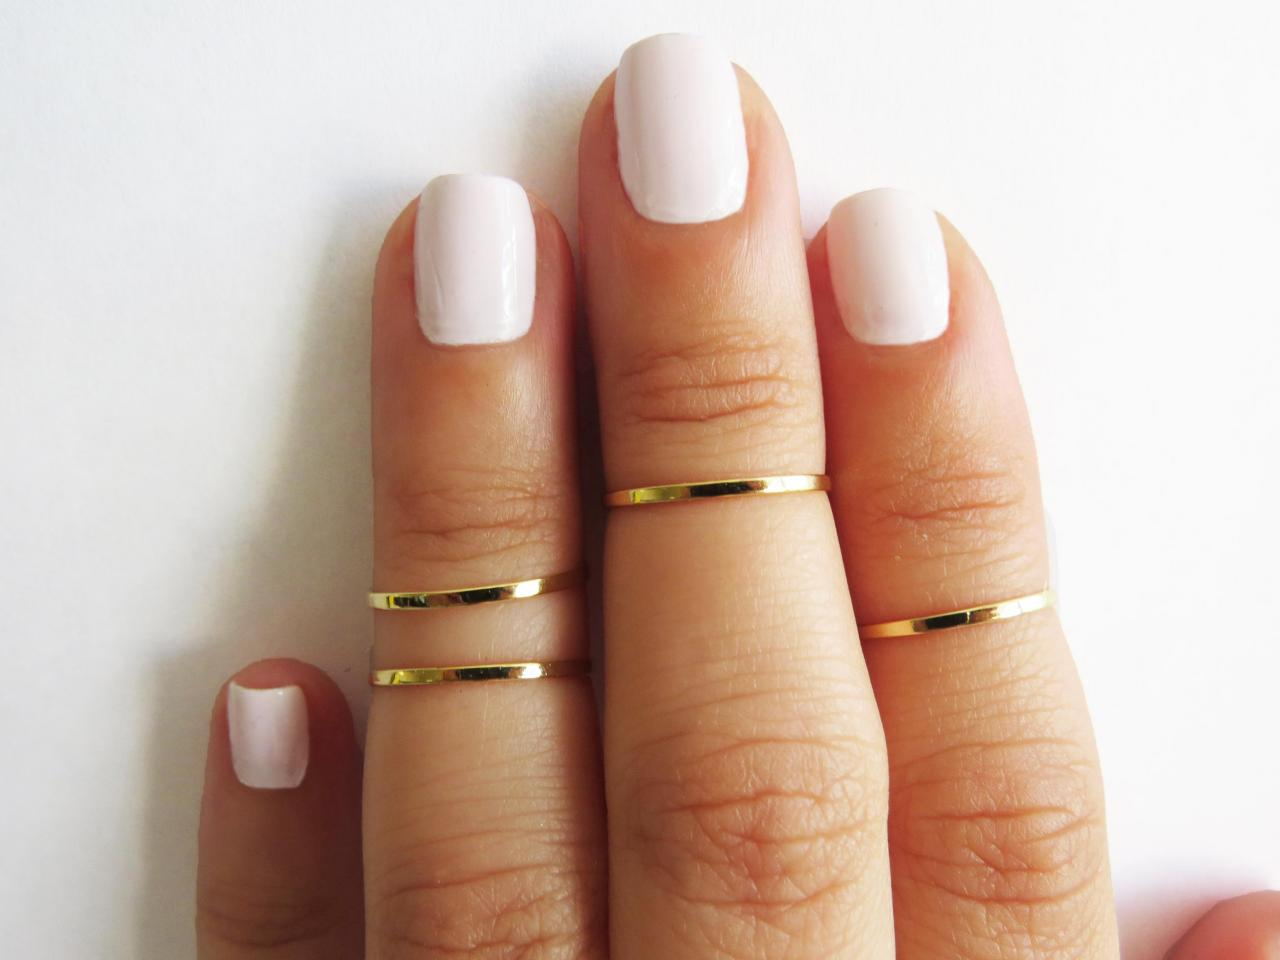 Gold Ring - Stacking rings, Knuckle Ring, Thin gold shiny bands, Set of 4 stack midi rings, Gold jewelry, Wire ring, Gold accessories